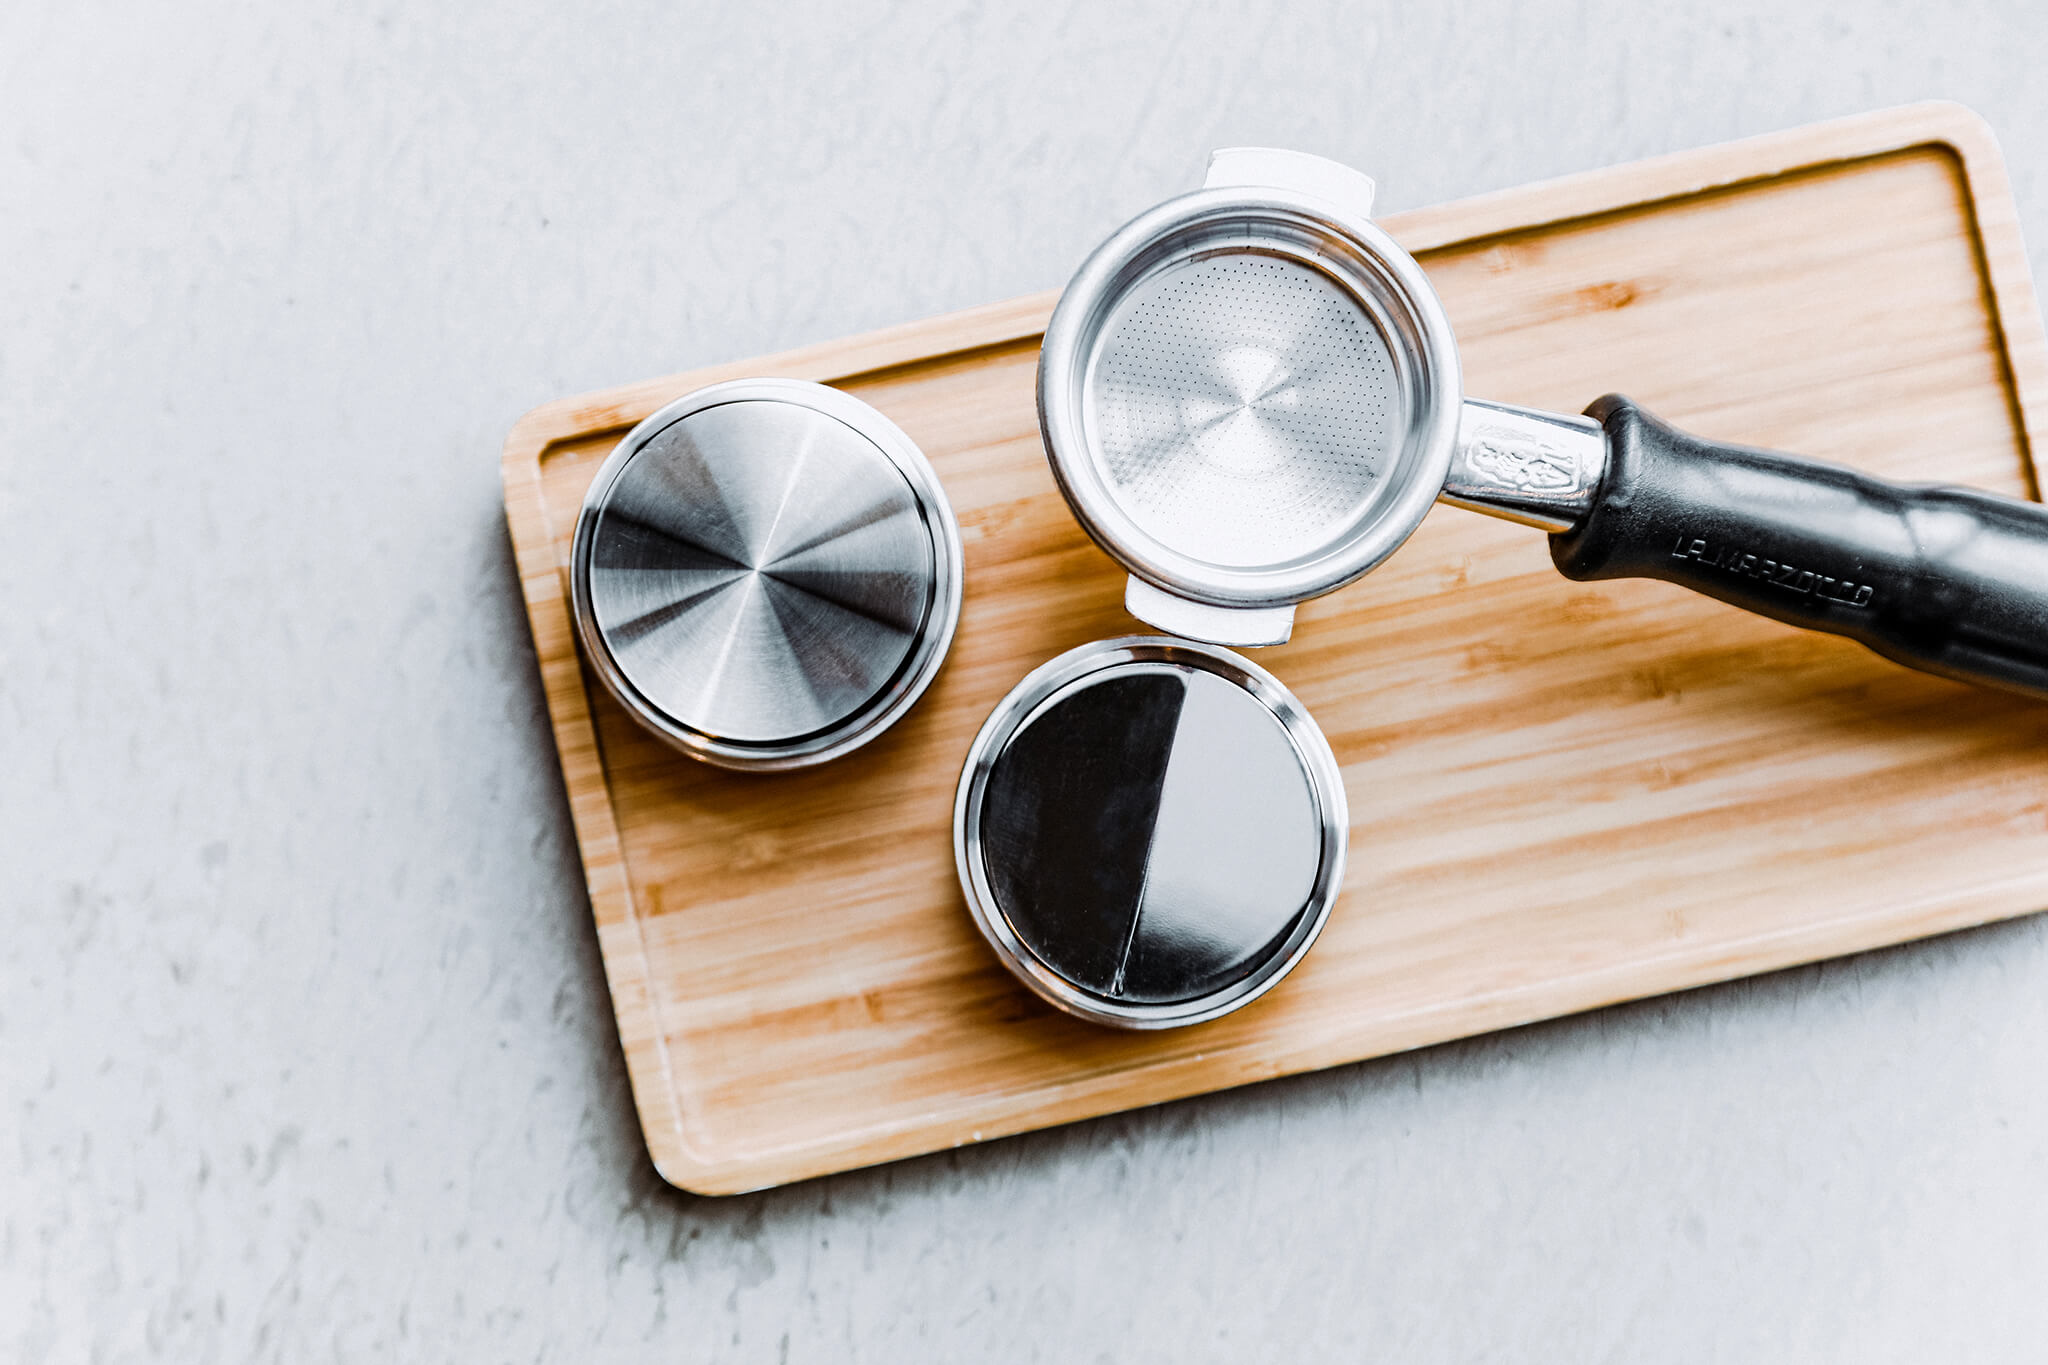 A set of coffee tampers sitting on the table